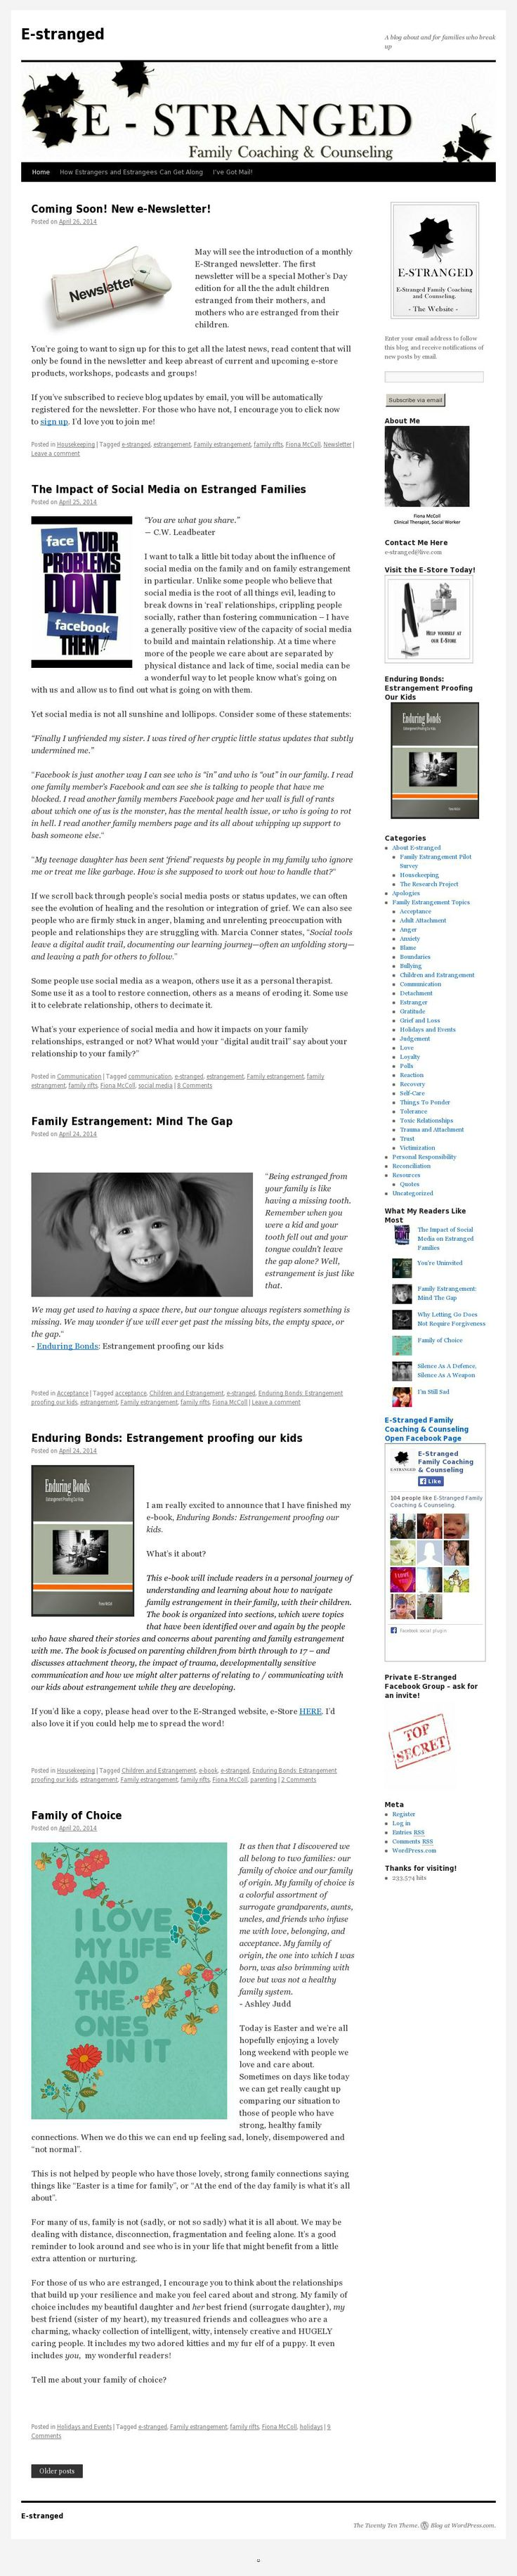 The E-Stranged blog - full of articles about family estrangement!